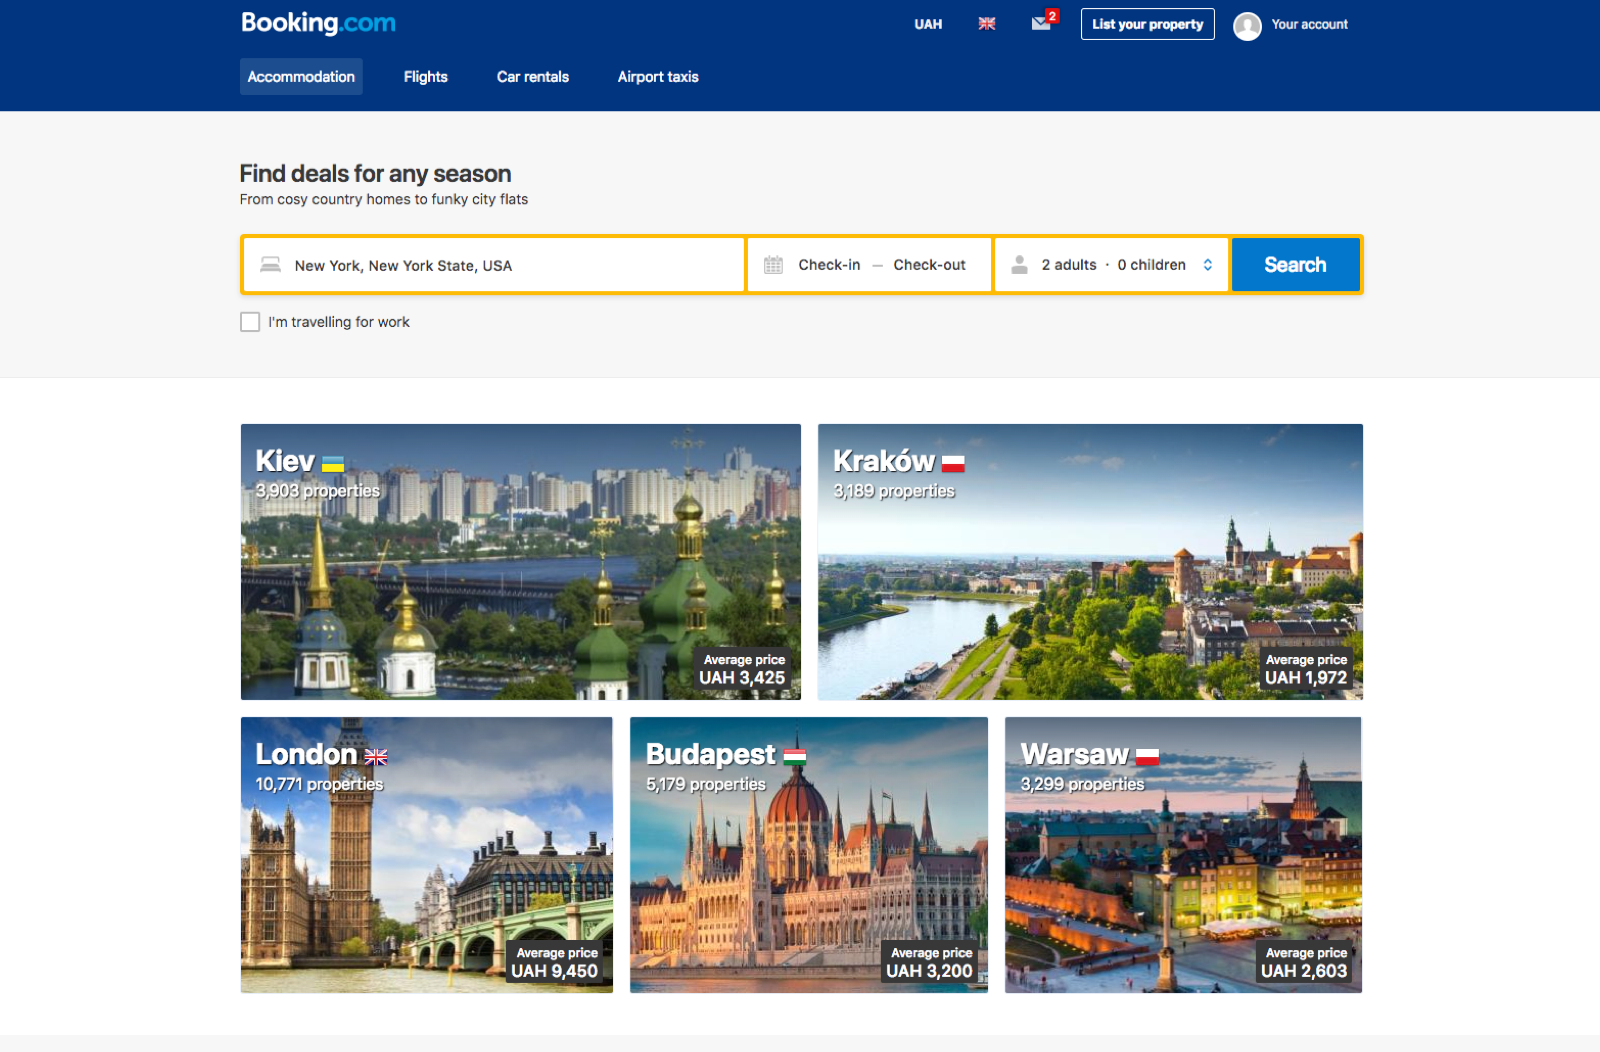 How Machine Learning and AI Can Improve Travel Services